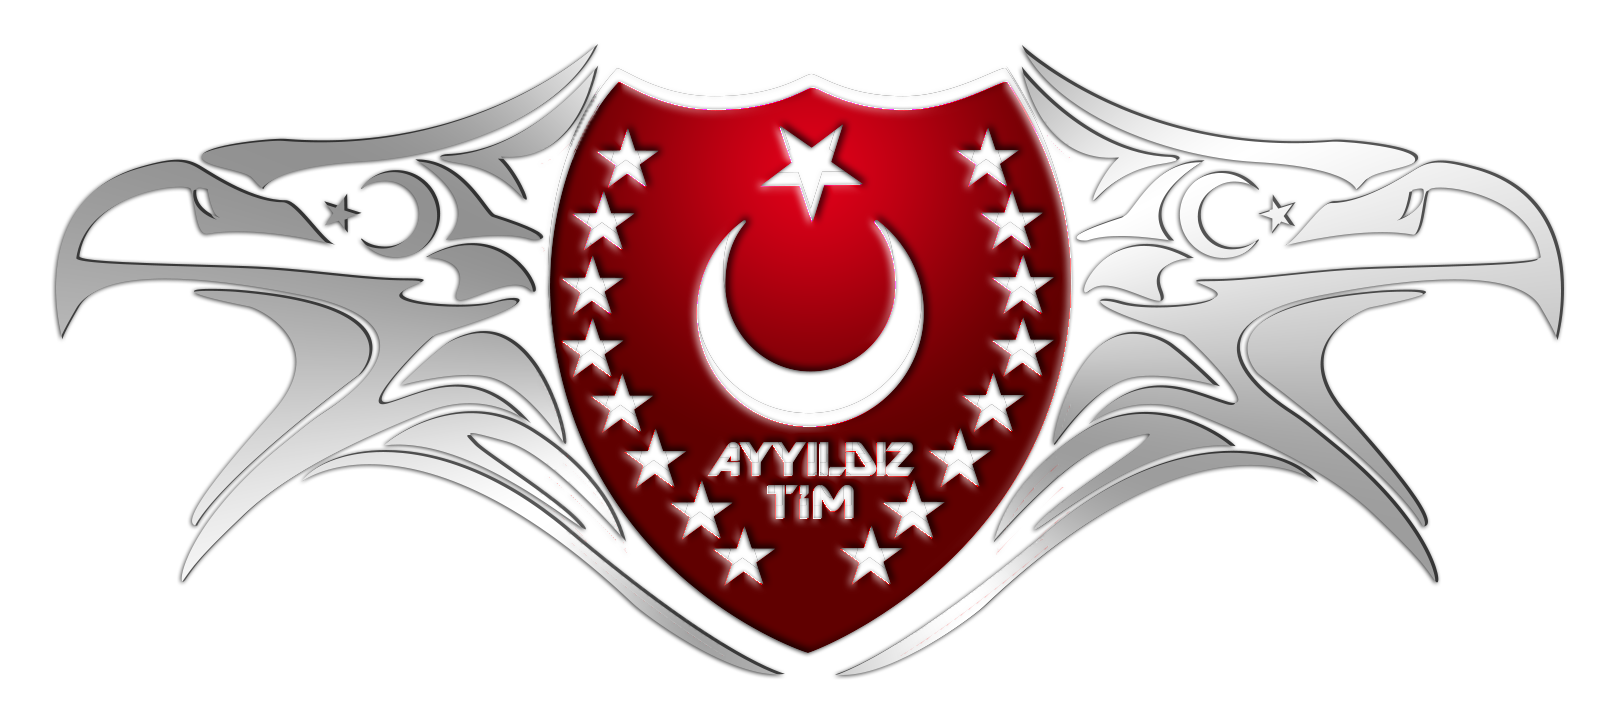 AYYILDIZ HACK TEAM